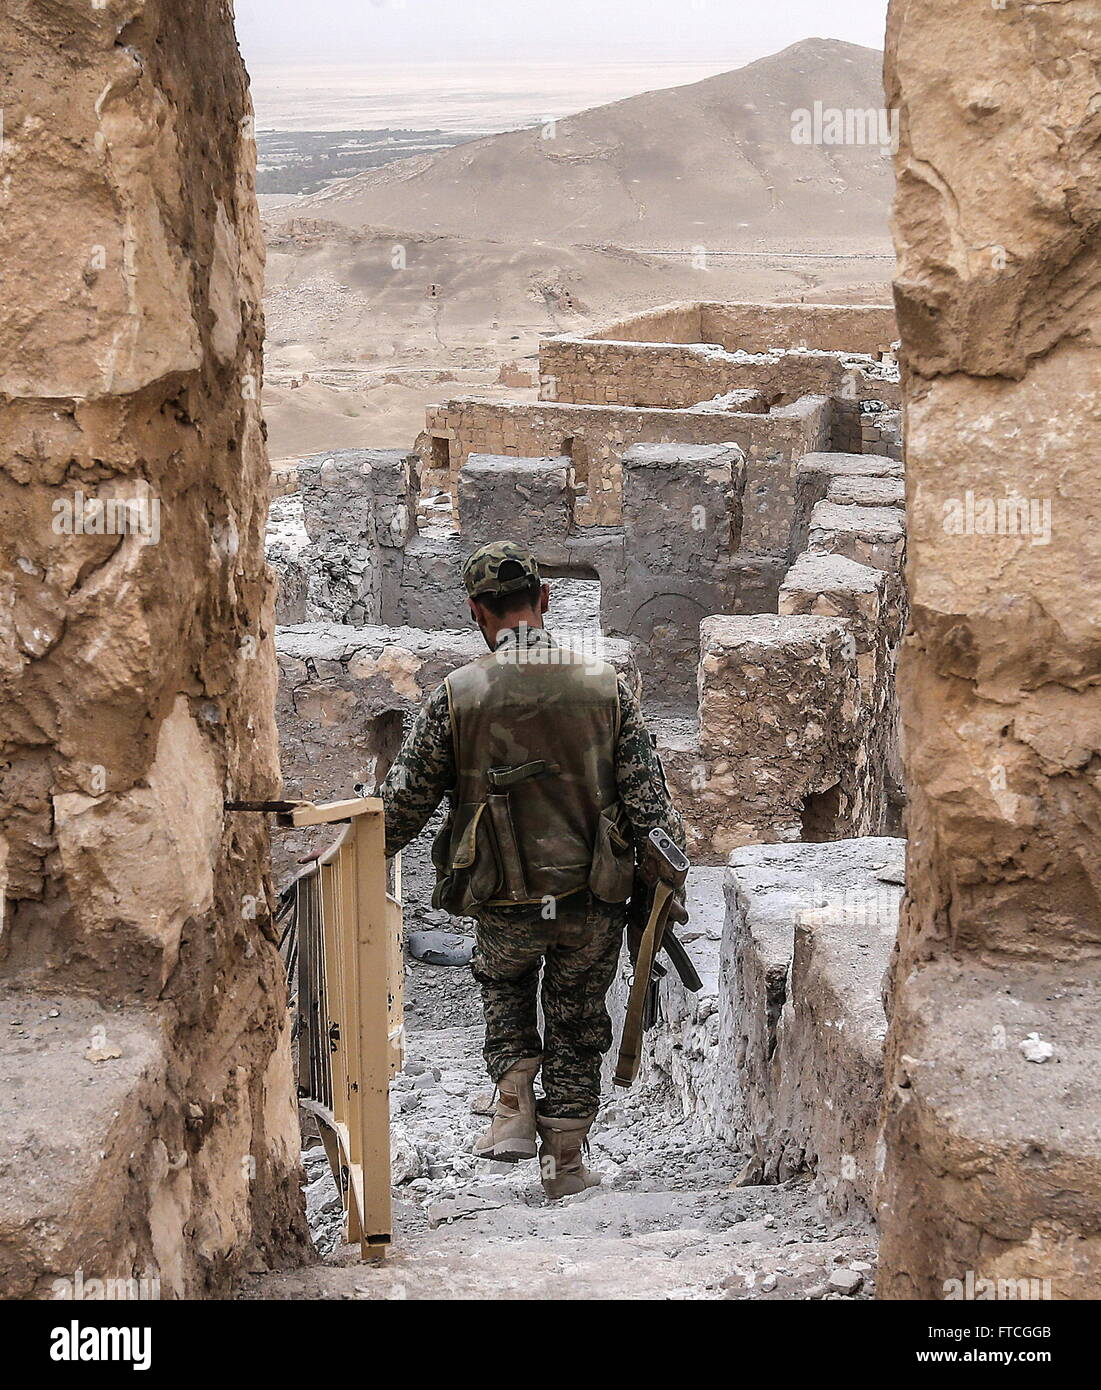 Palmyria, Syria. 26th Mar, 2016. A Syrian government army soldier walks down the steps in Fakhr al-Din al-Maani - Stock Image